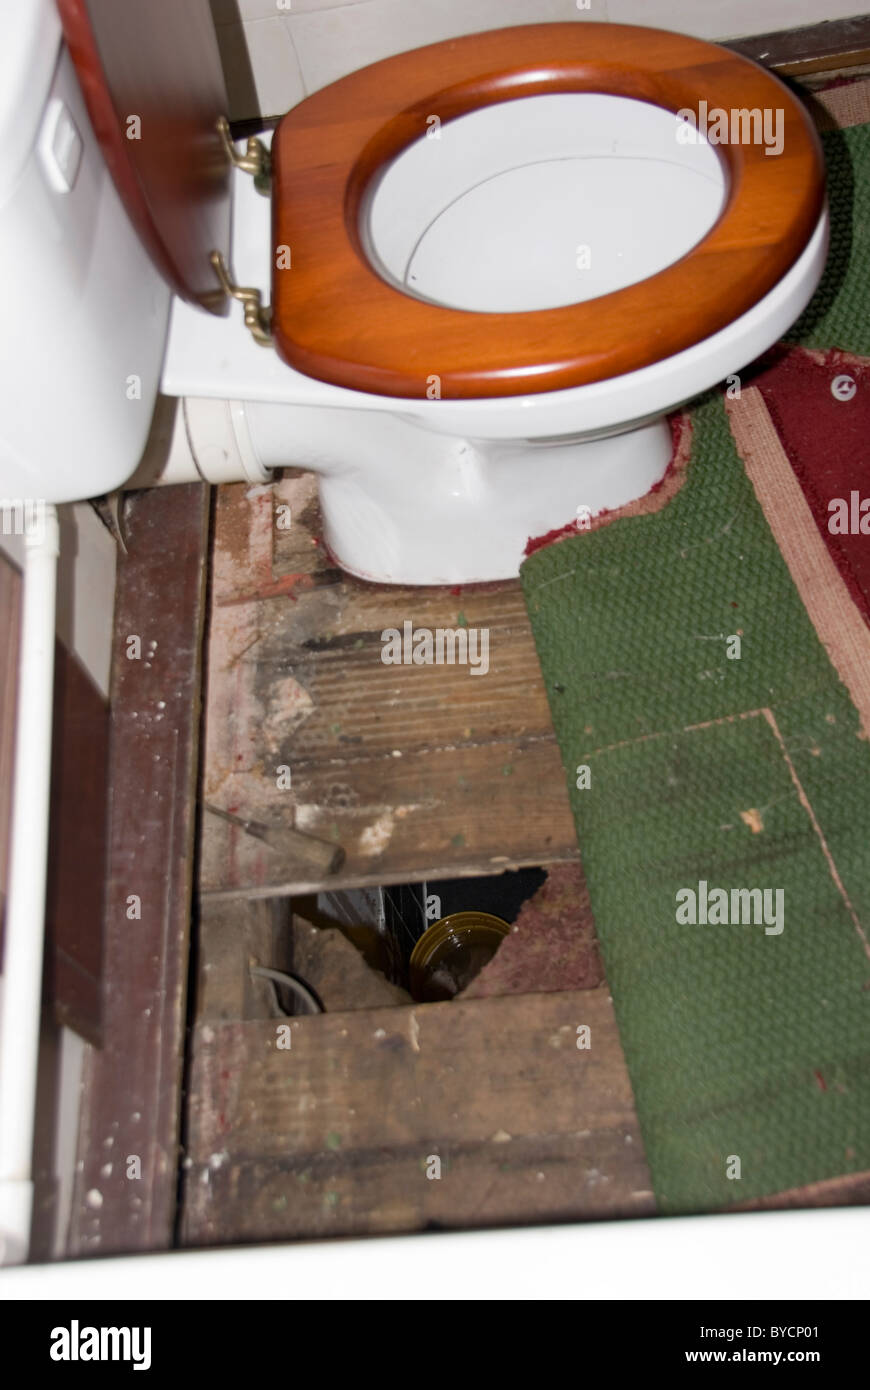 Carpet Rolled Back Floor Boards Lifted in Toilet to Reveal